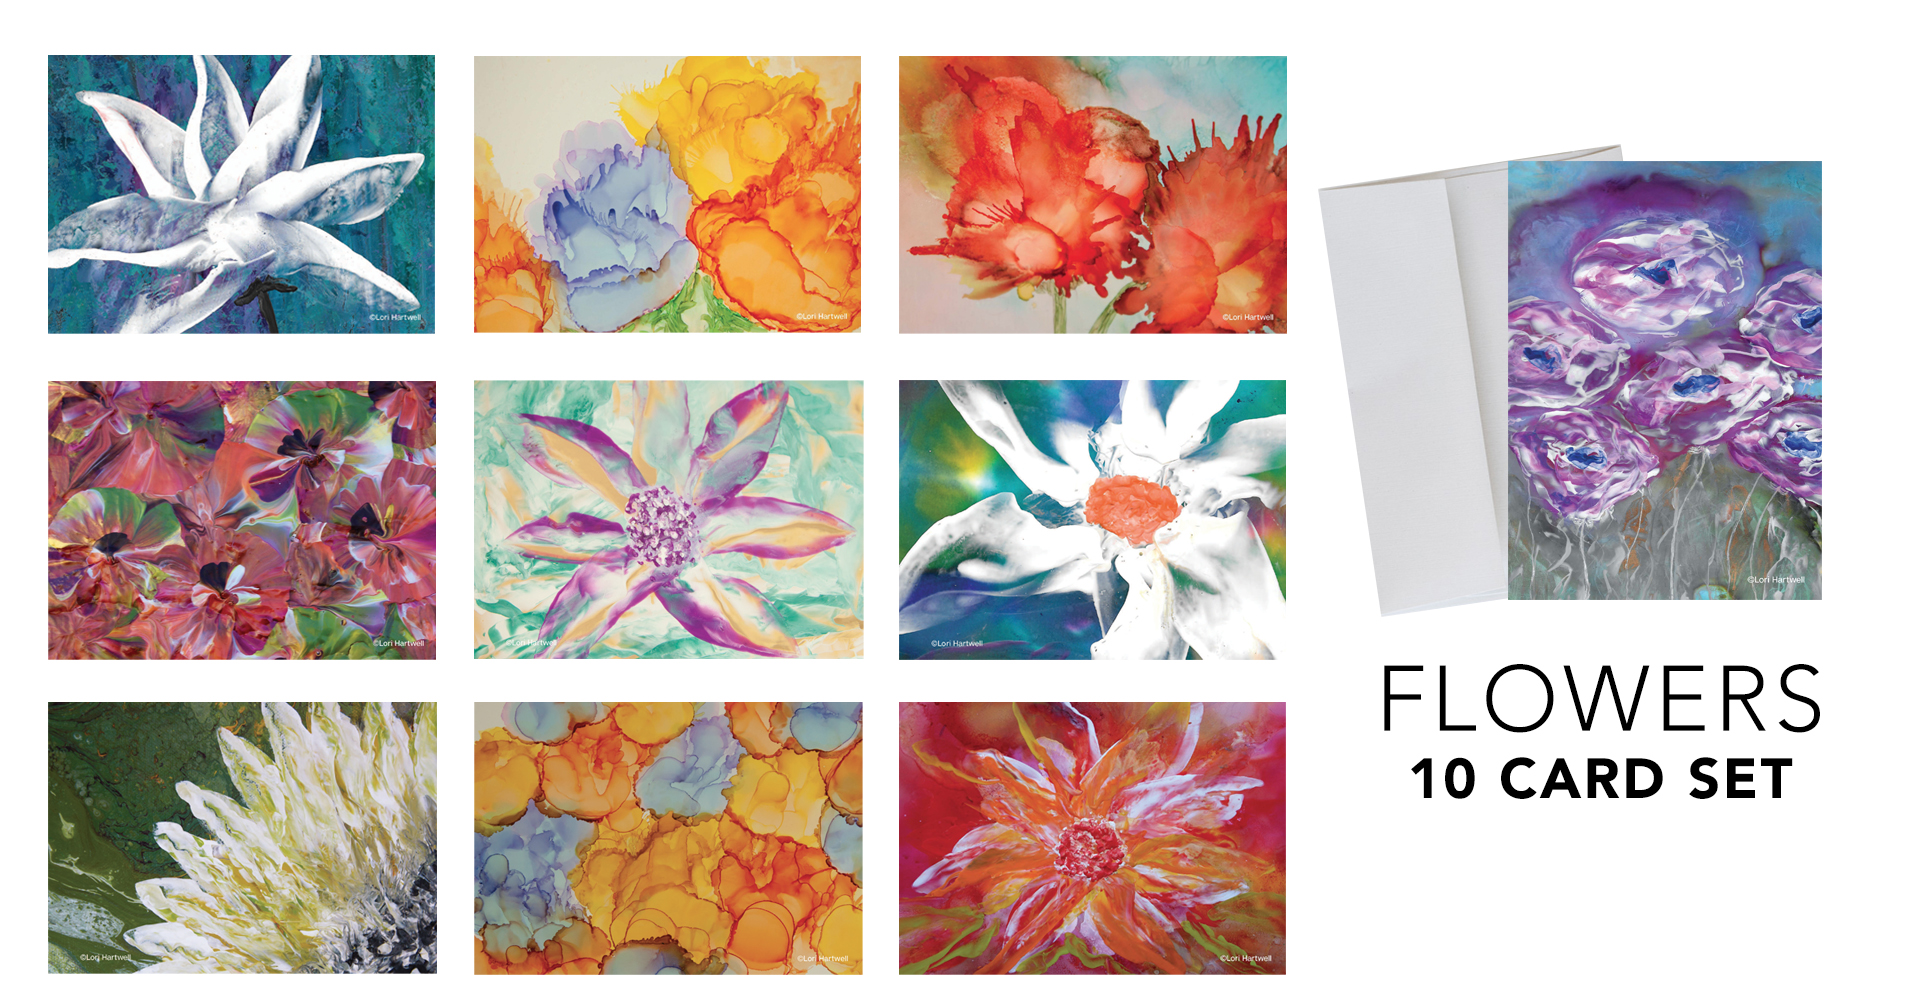 Fine Art Notecards - Flowers - 10 CARD SET